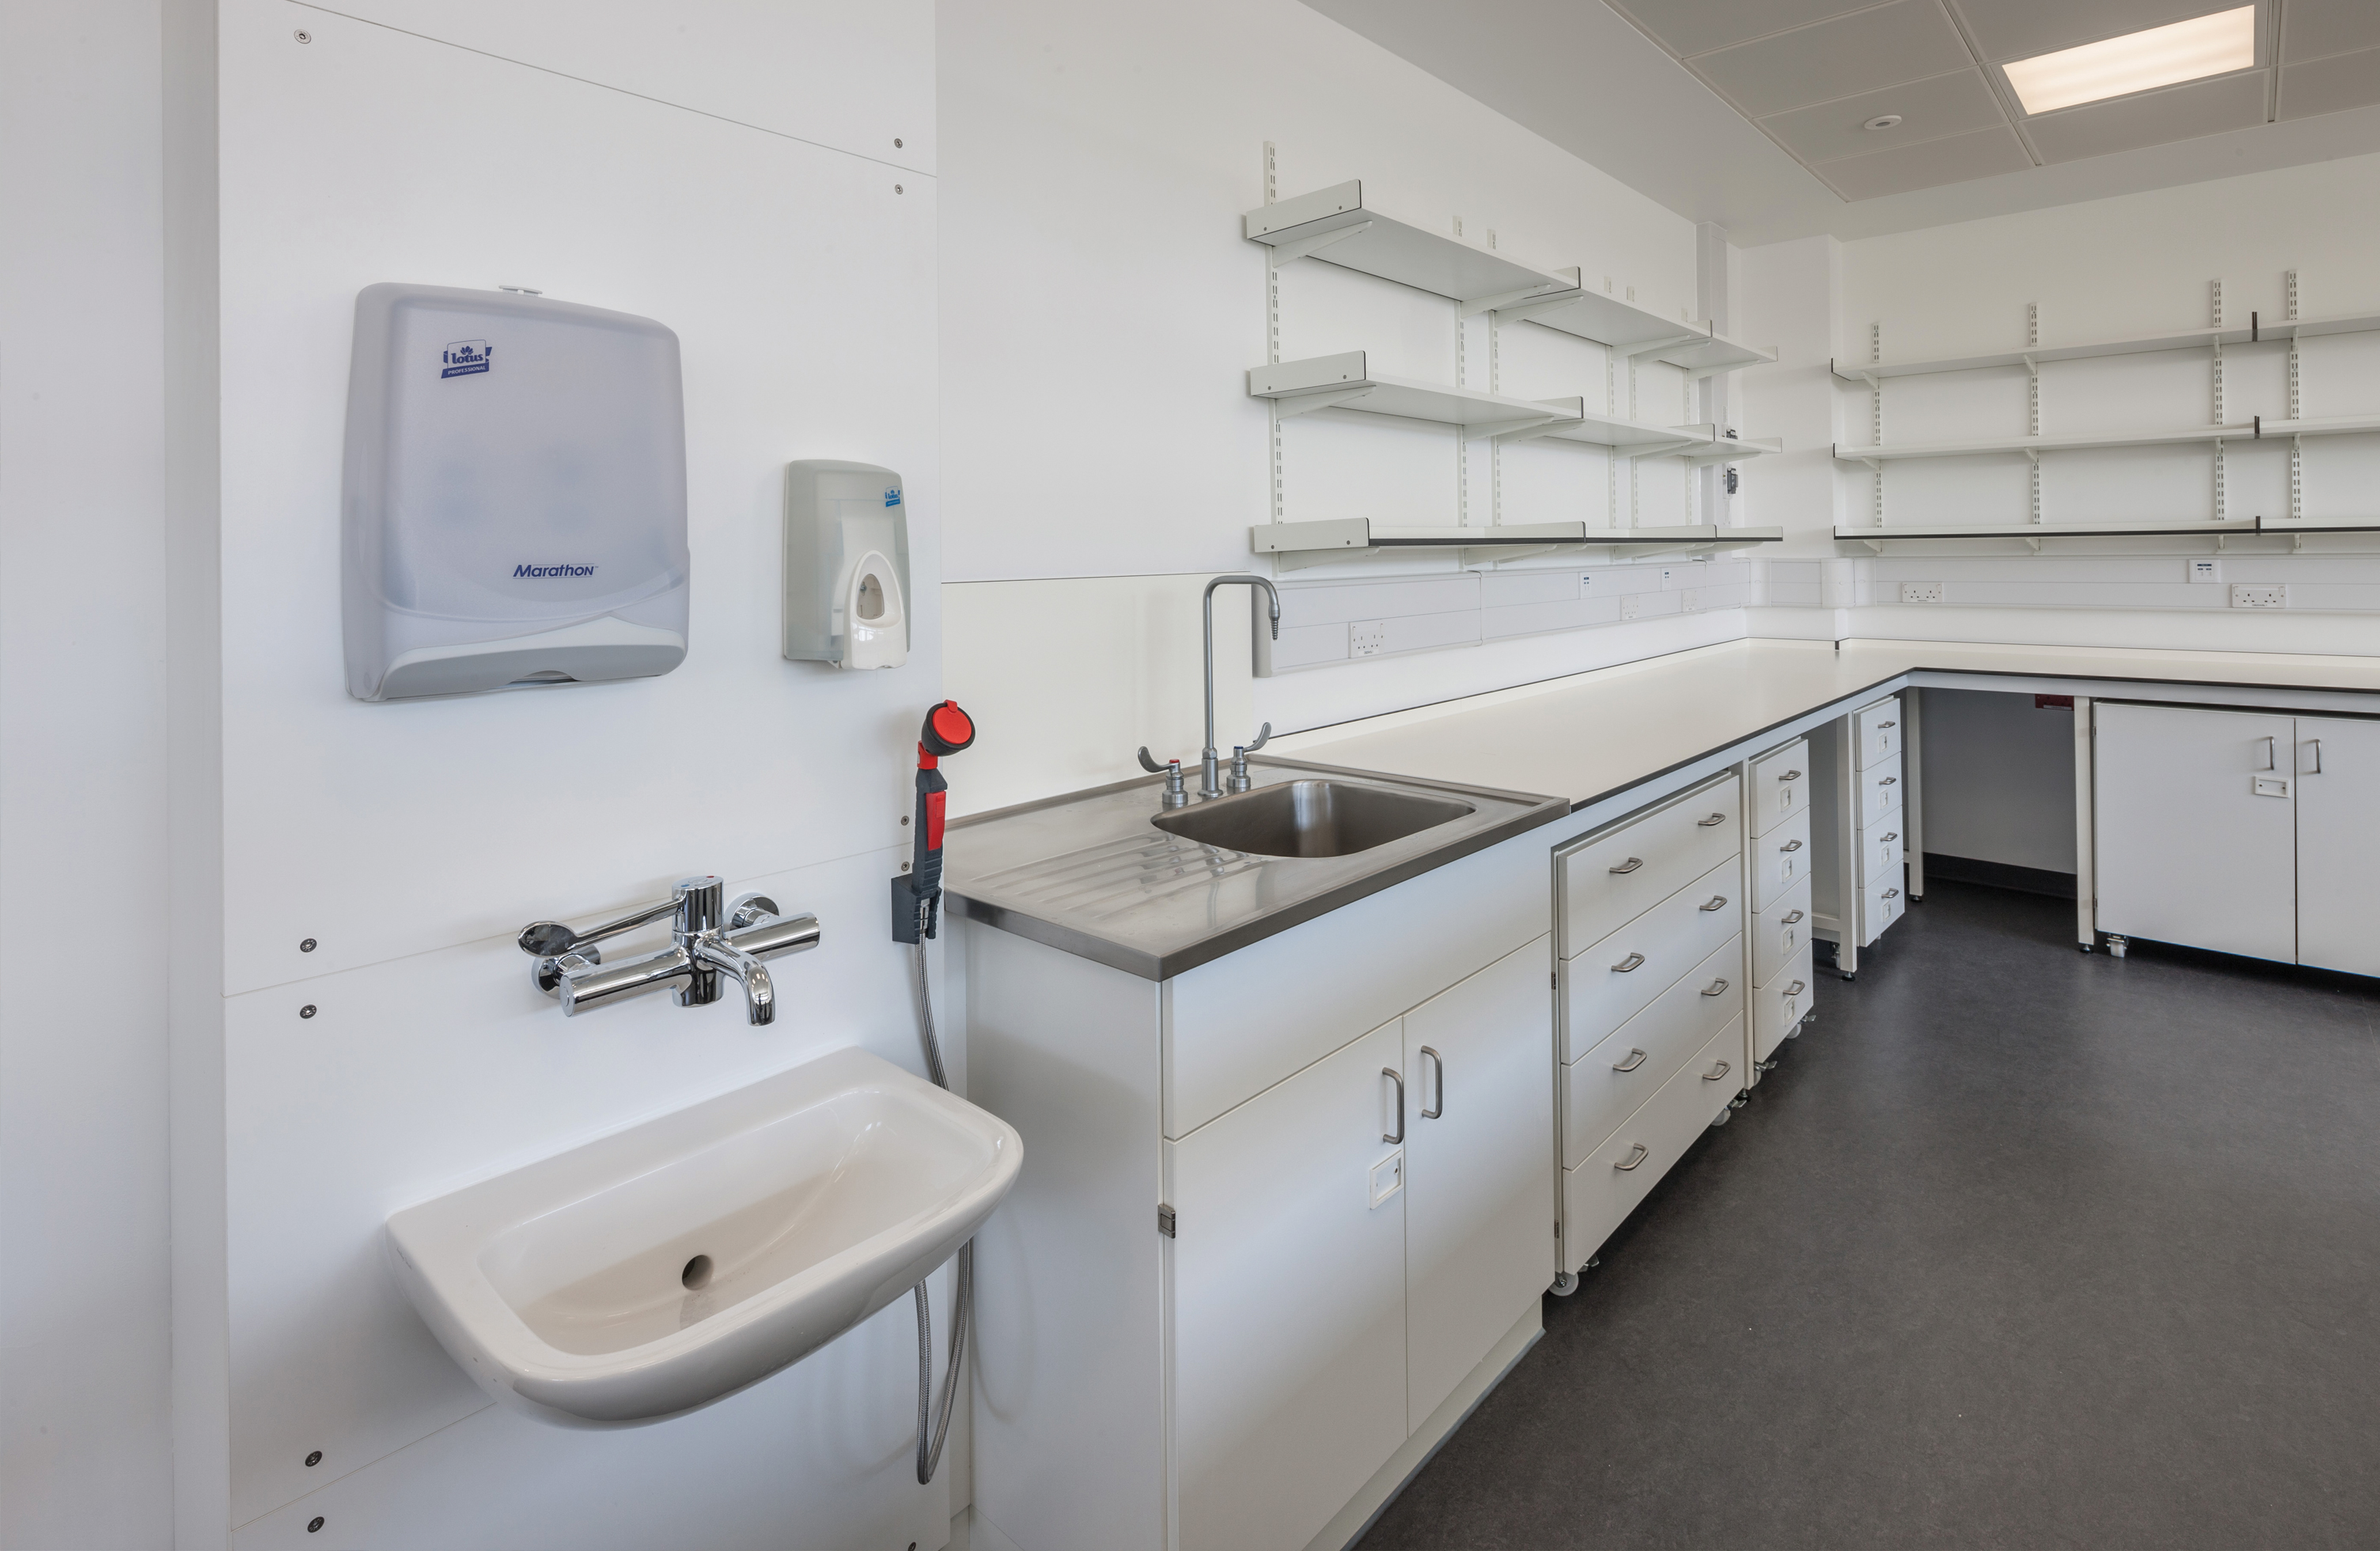 Industrial laboratory sink options